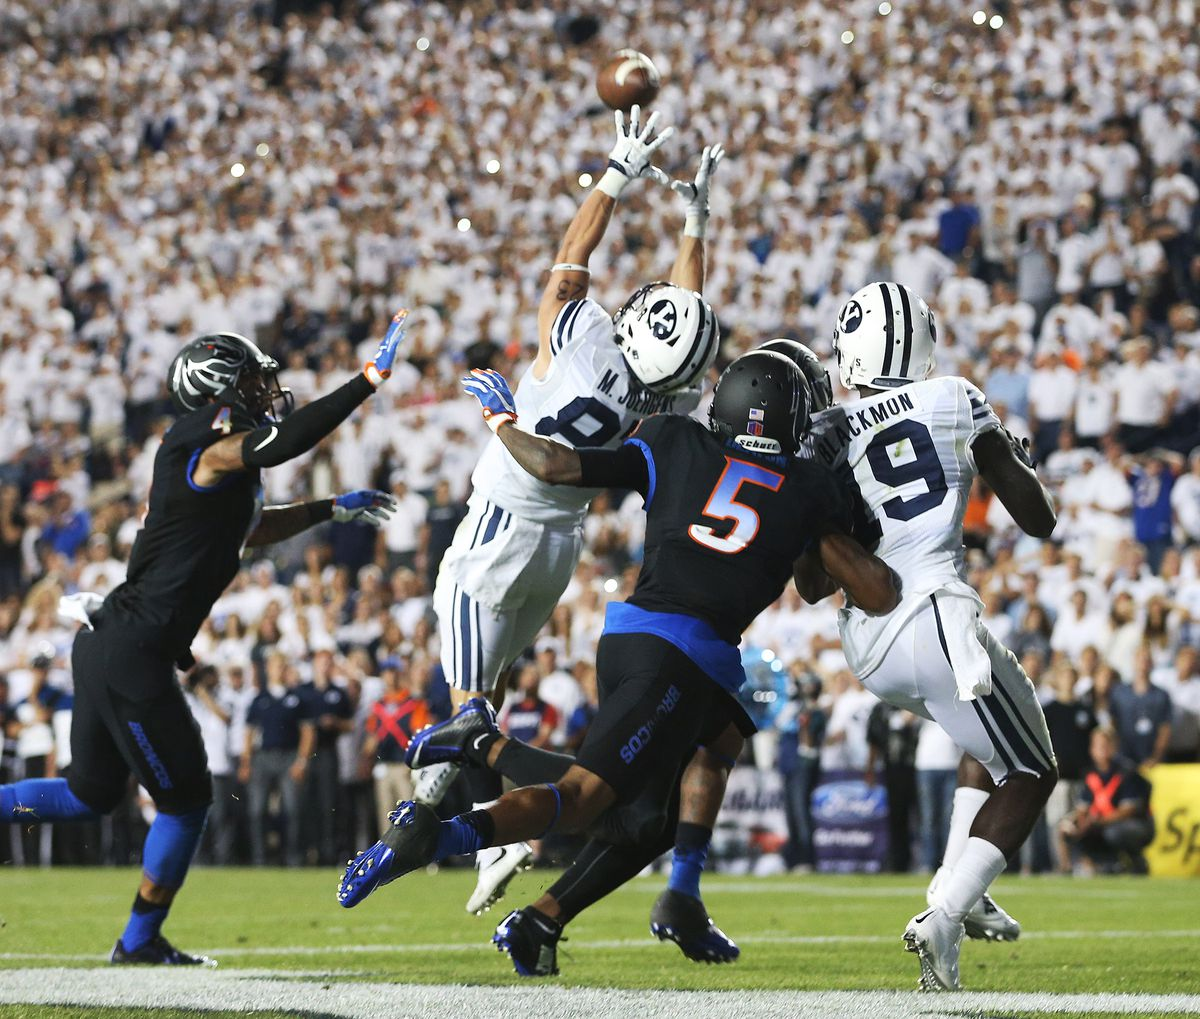 Brigham Young Cougars wide receiver Mitchell Juergens (87) makes a catch in the end zone for the go ahead score as BYU and Boise State play Saturday, Sept. 12, 2015, at LaVell Edwards Stadium in Provo.